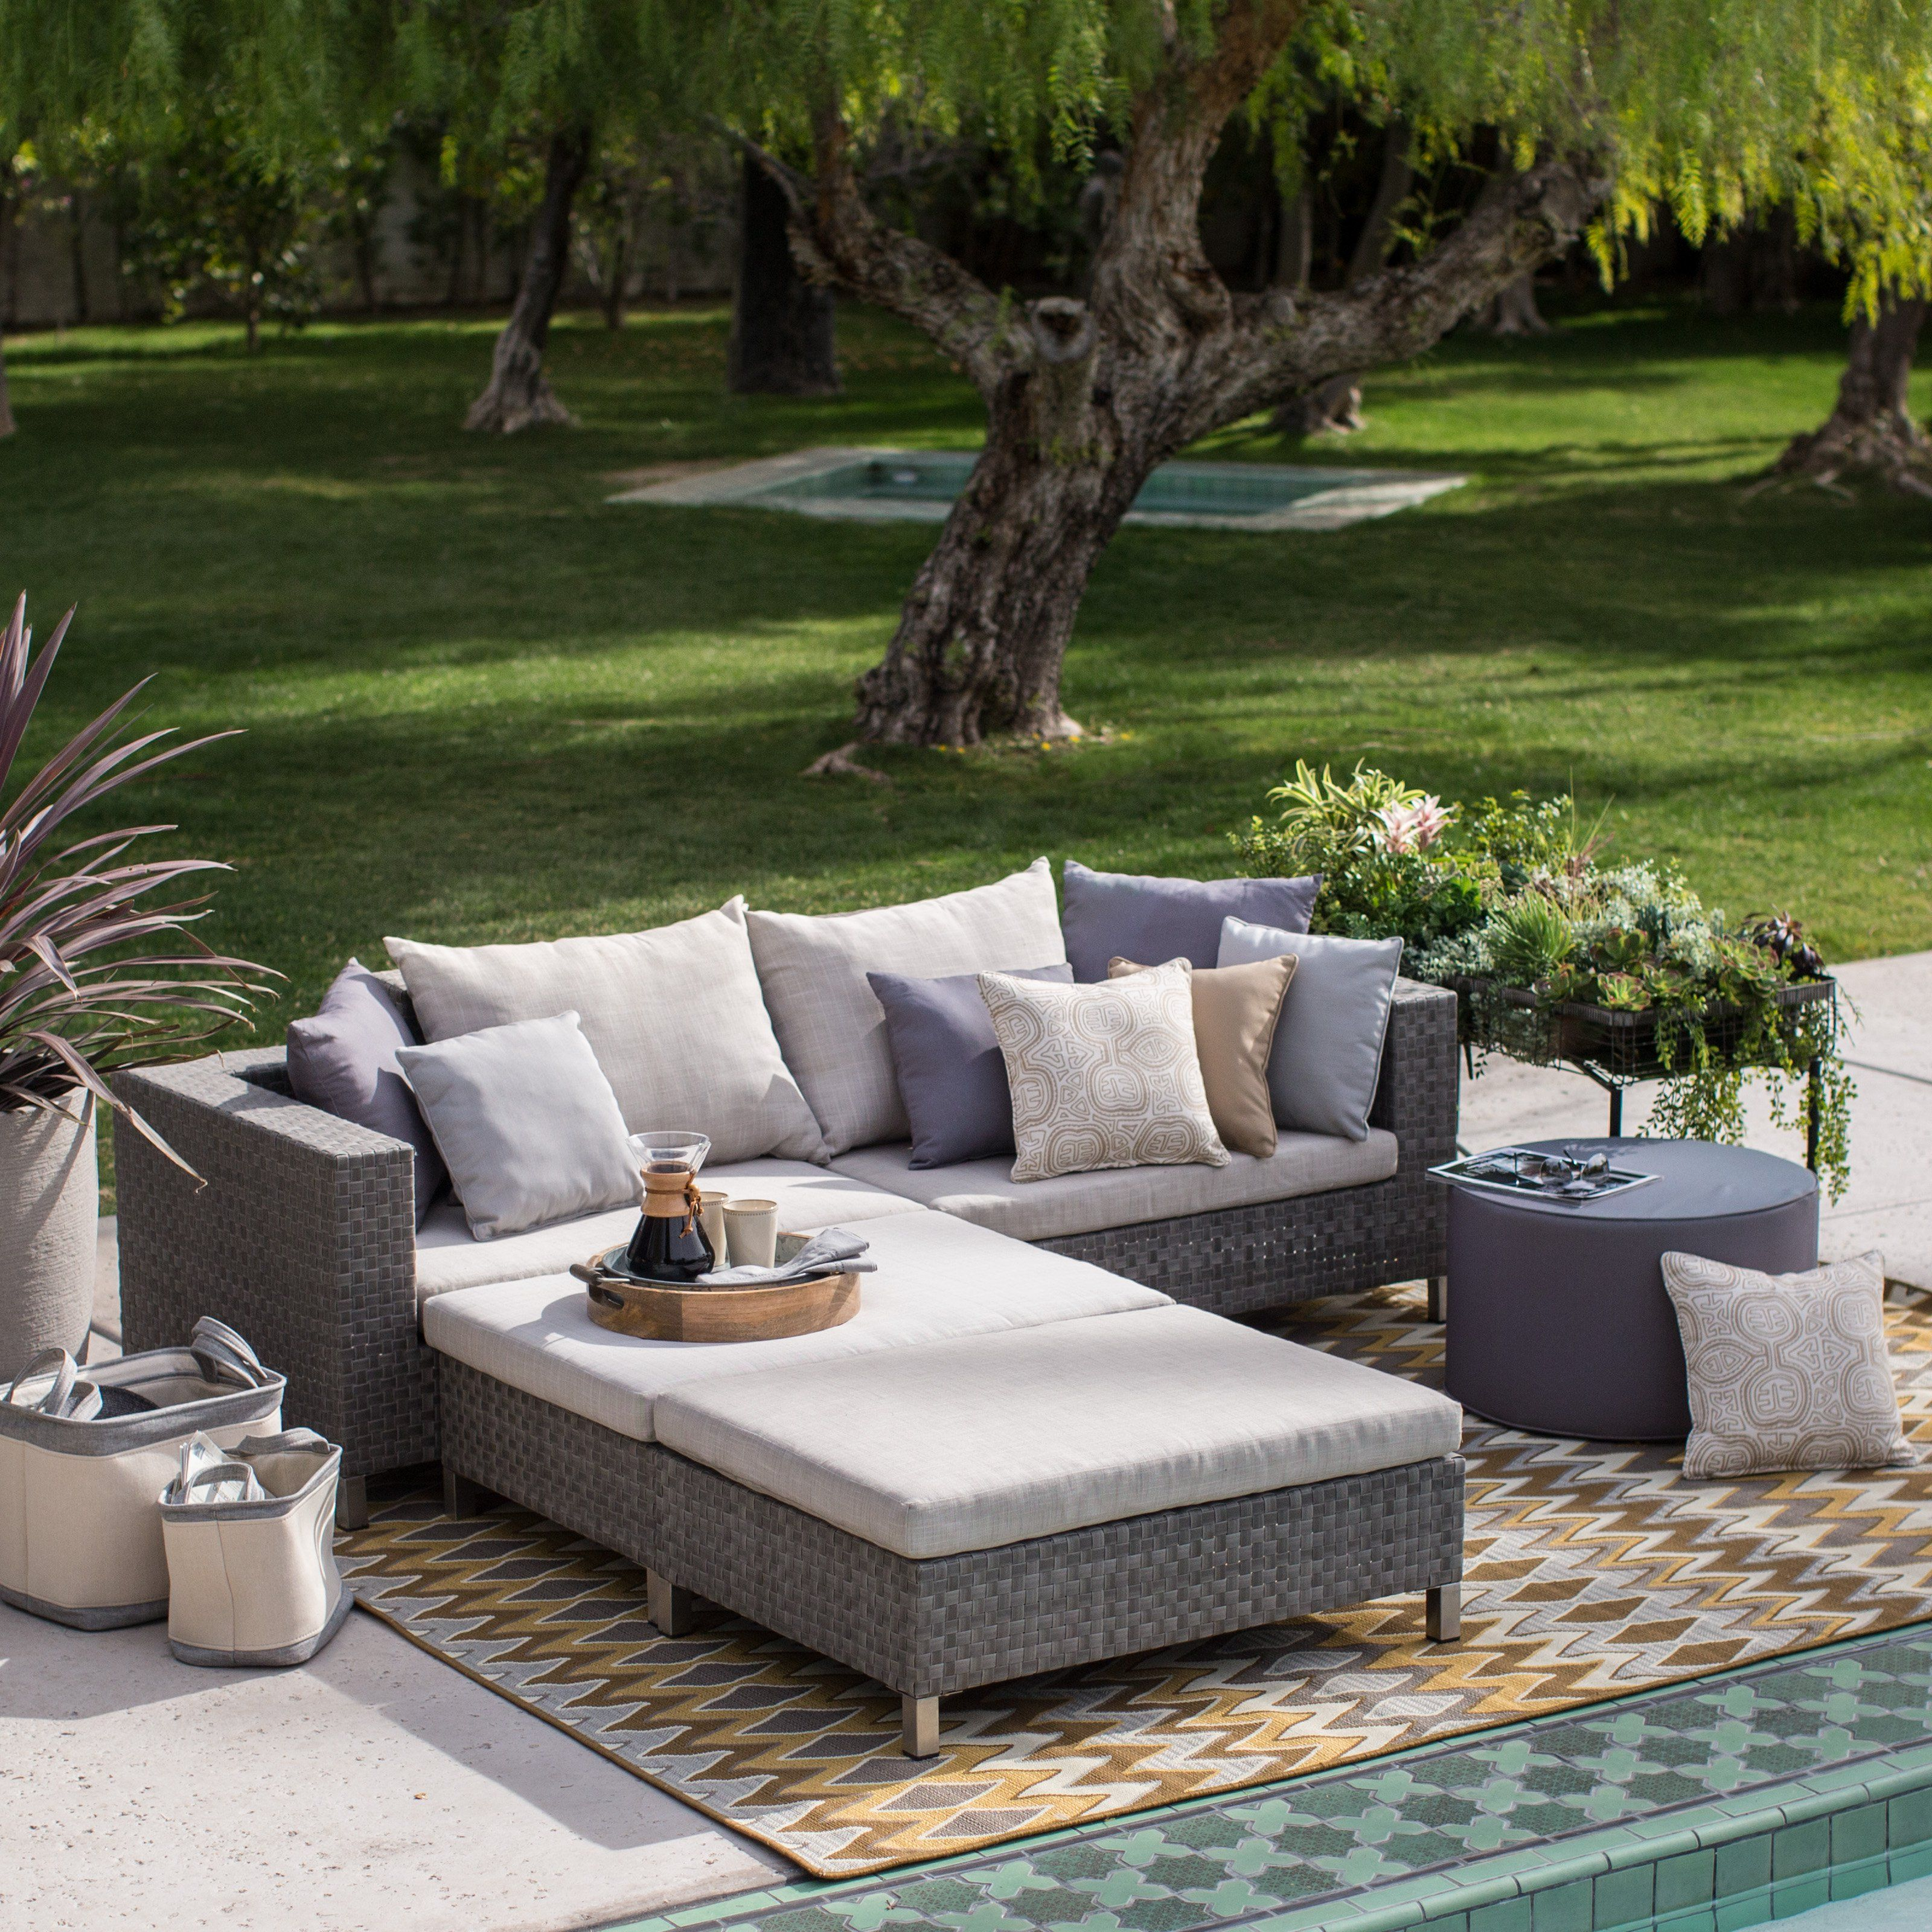 Belham Living Anatara All Weather Wicker Sofa Sectional Set